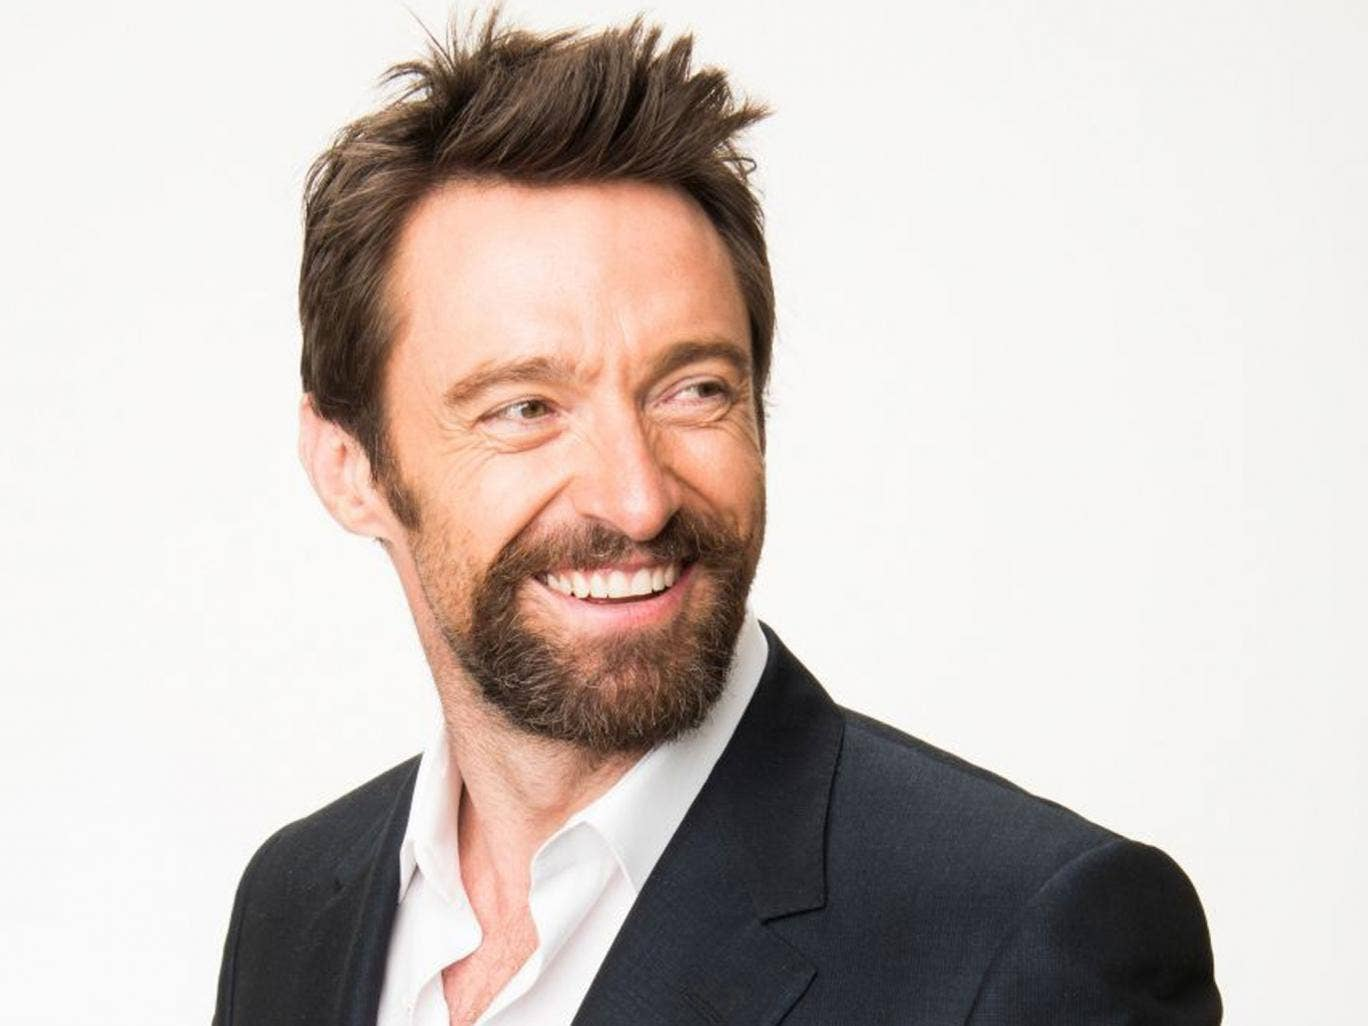 Good hair day: Wolverine actor Hugh Jackman